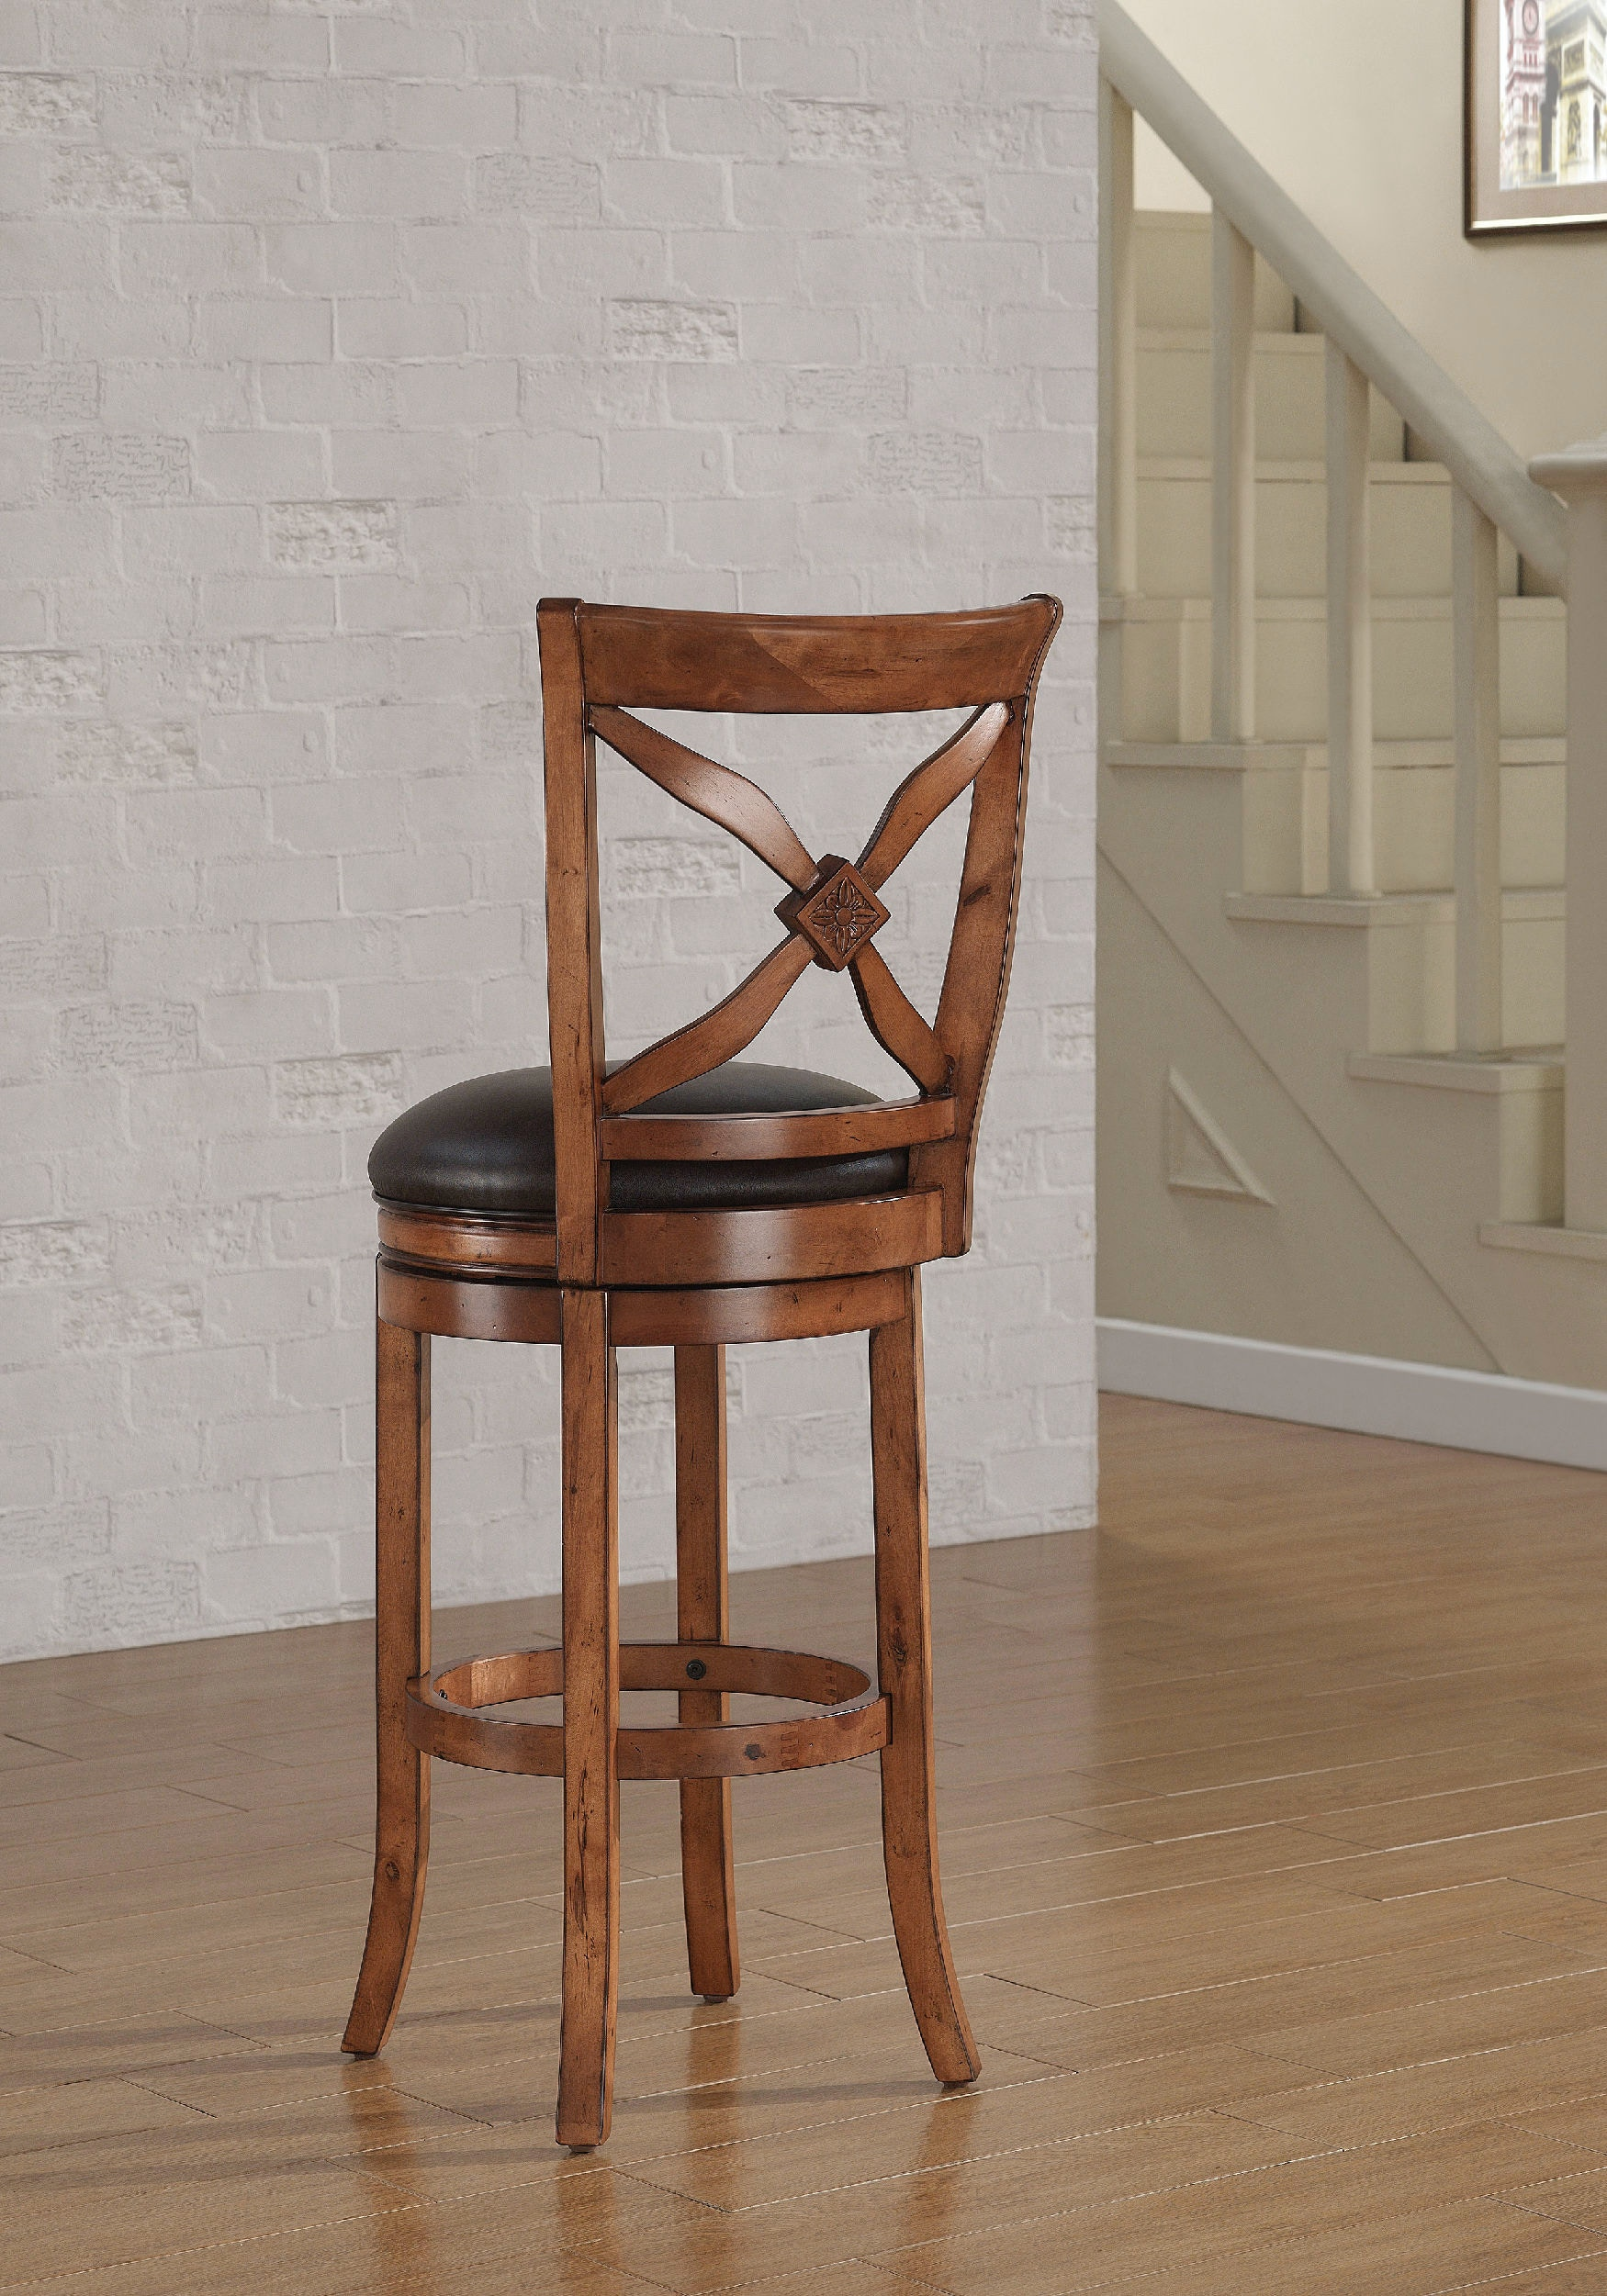 American Woodcrafters Bar and Game Room Bar Stool B2 201  : 20120stool20 2 from www.bosticsugg.com size 1024 x 768 jpeg 44kB